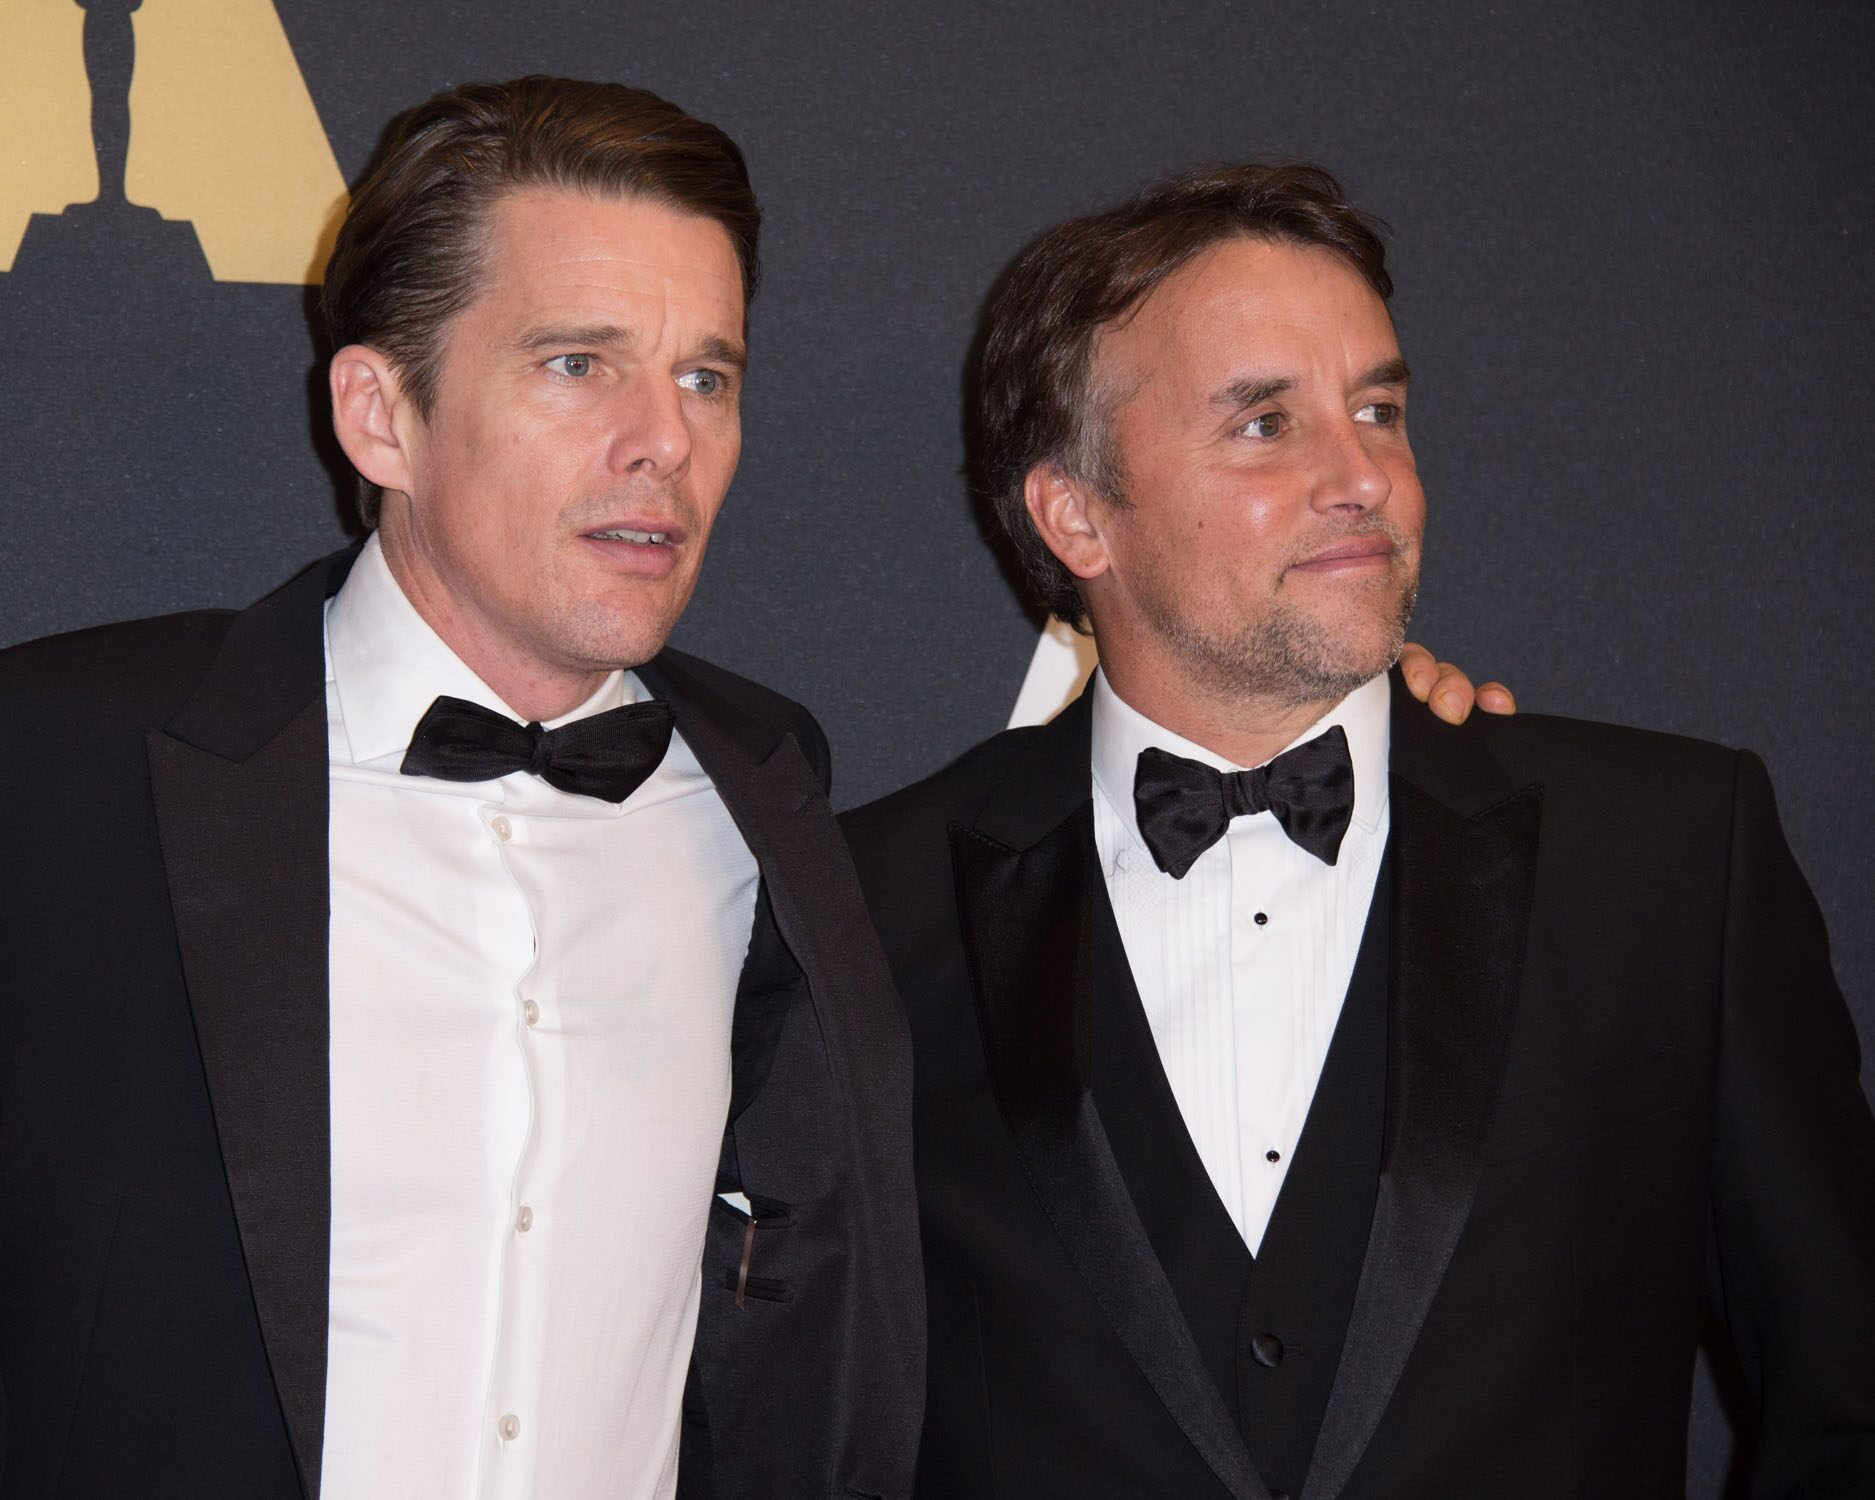 Ethan Hawke (left) and Richard Linklater at the 6th Annual Governors Awards